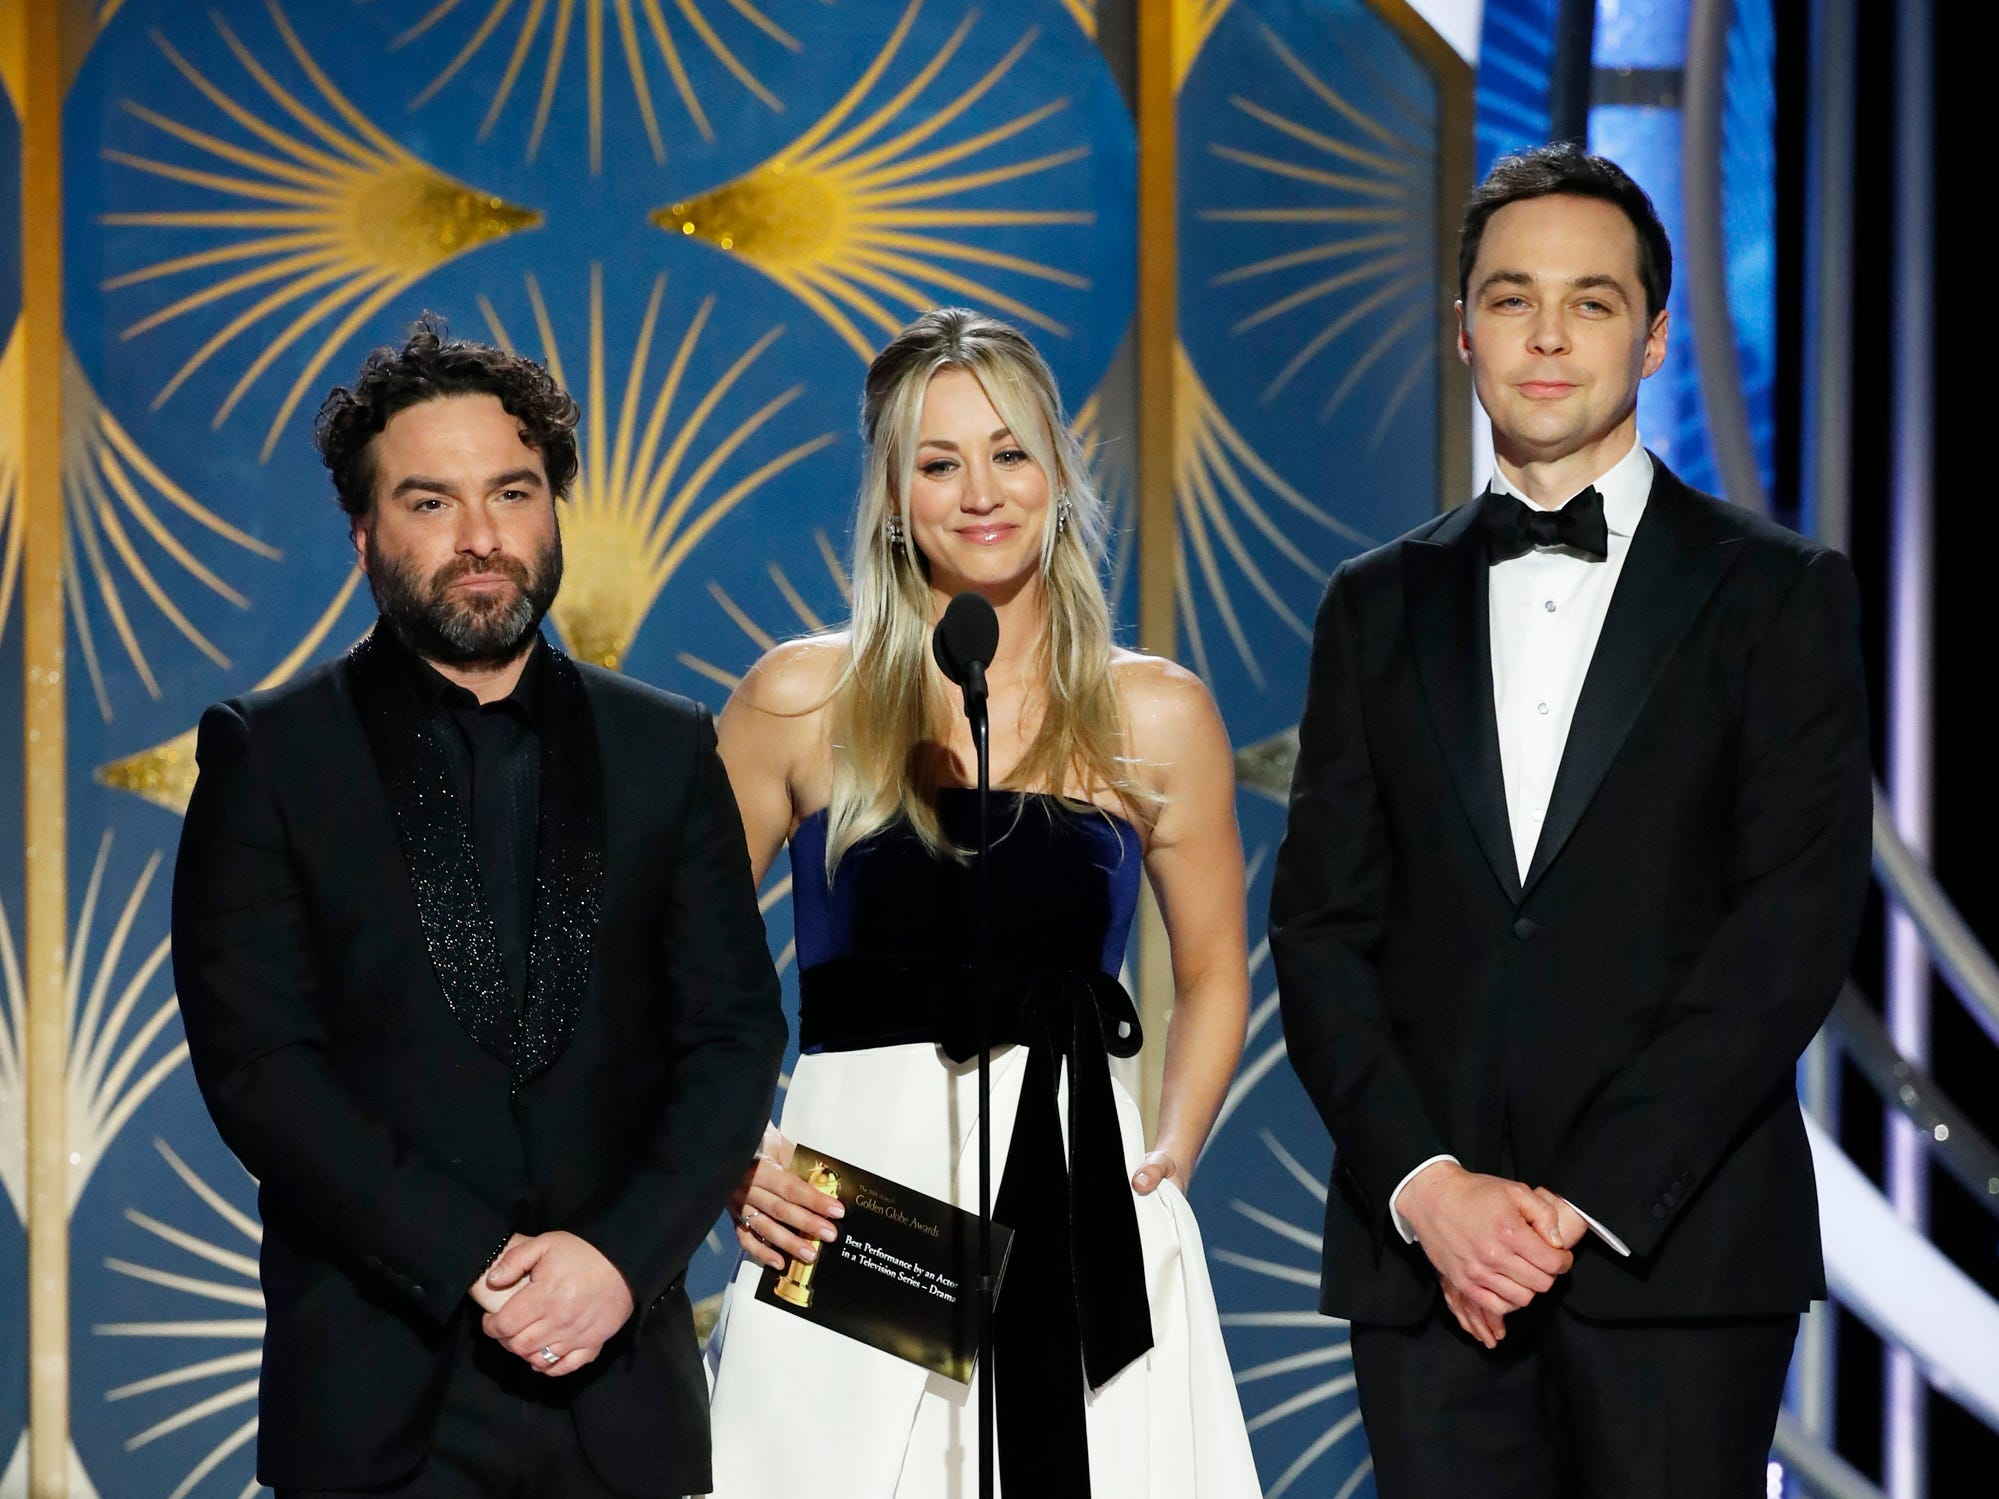 This image released by NBC shows presenters Johnny Galecki, from left, Kelly Cuoco, Jim Parsons during the 76th Annual Golden Globe Awards at the Beverly Hilton Hotel.